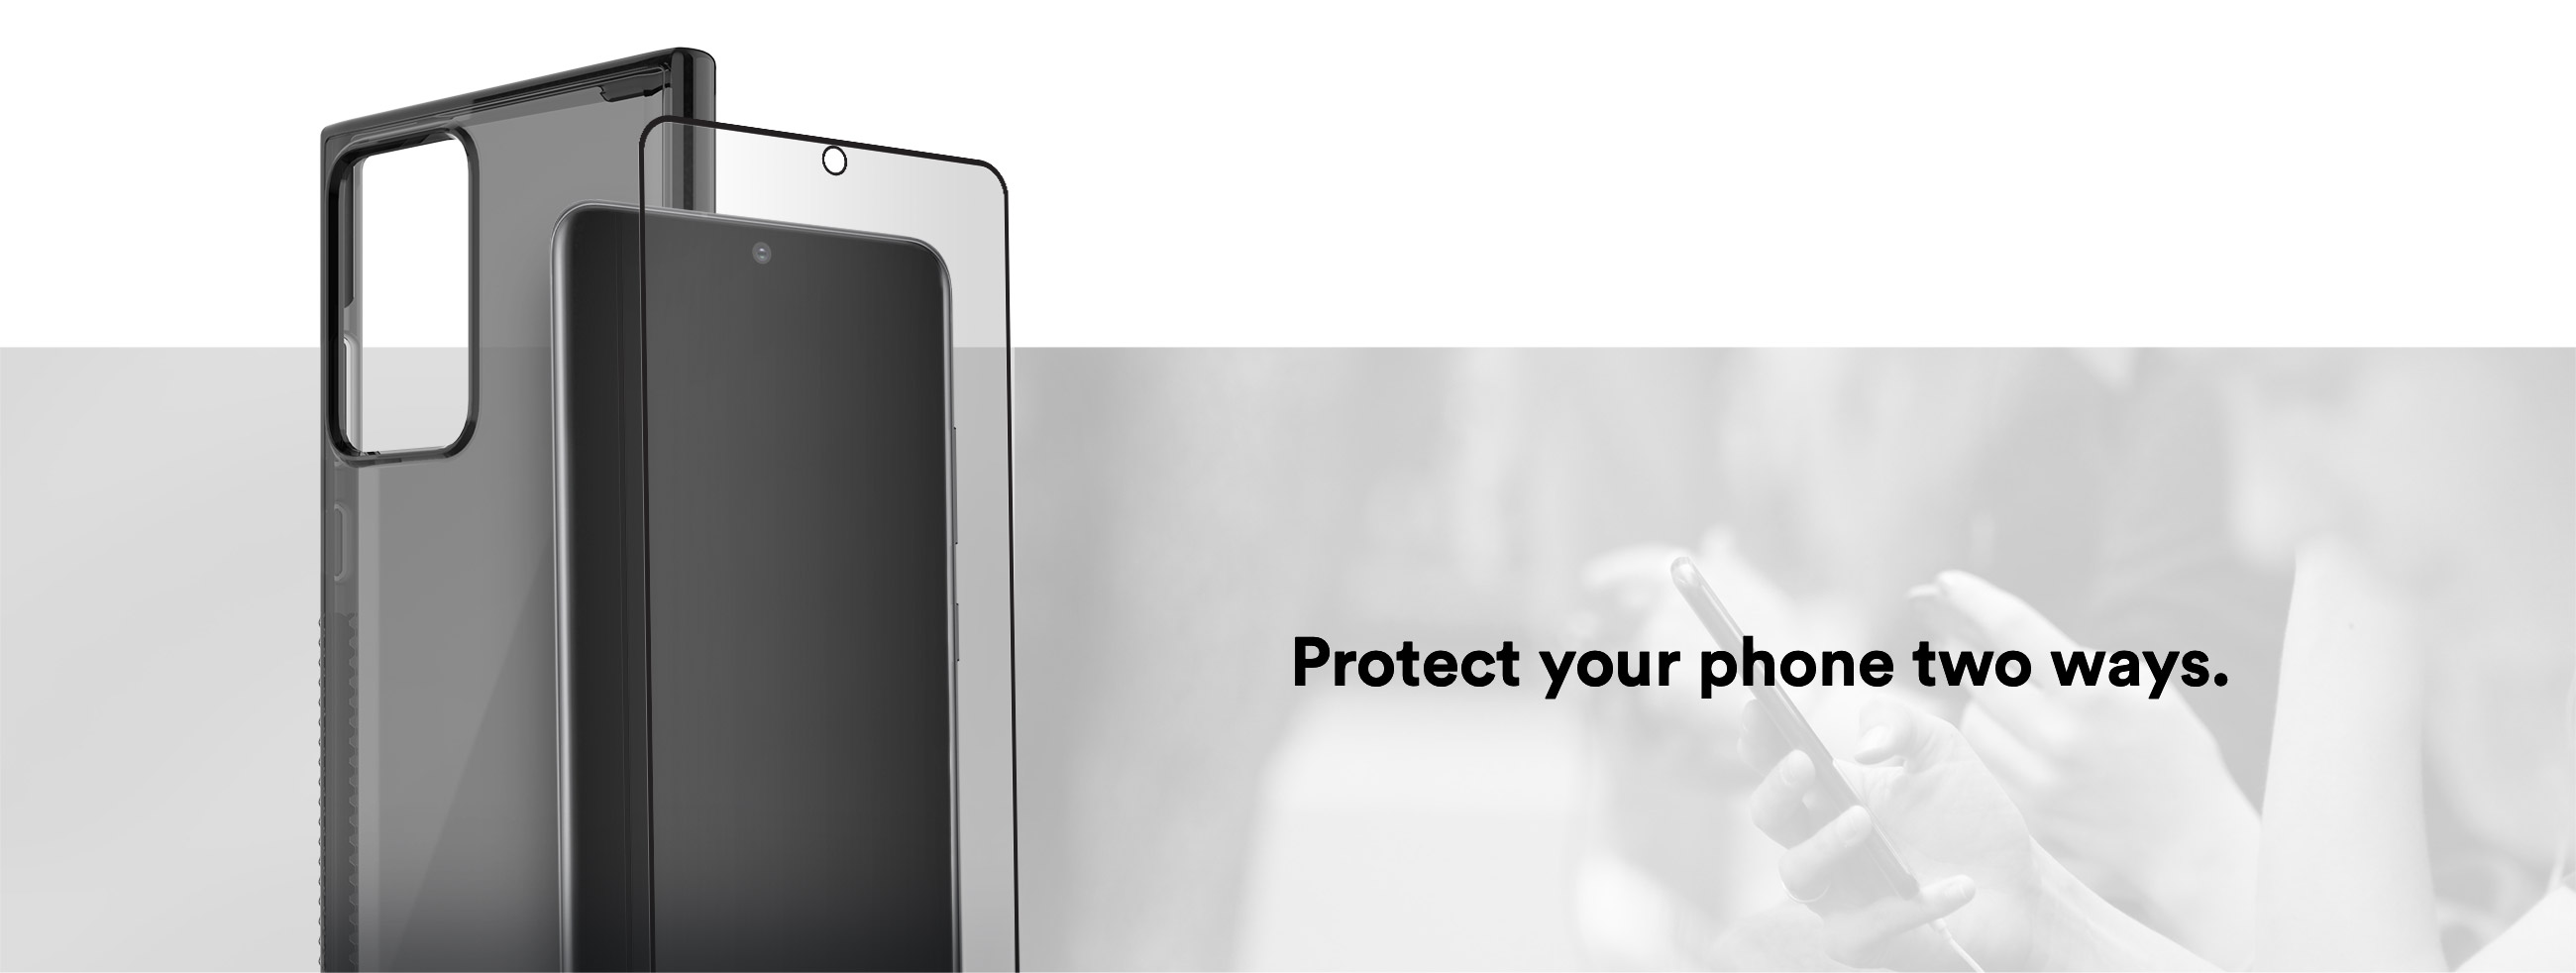 Protect your device, and yourself.